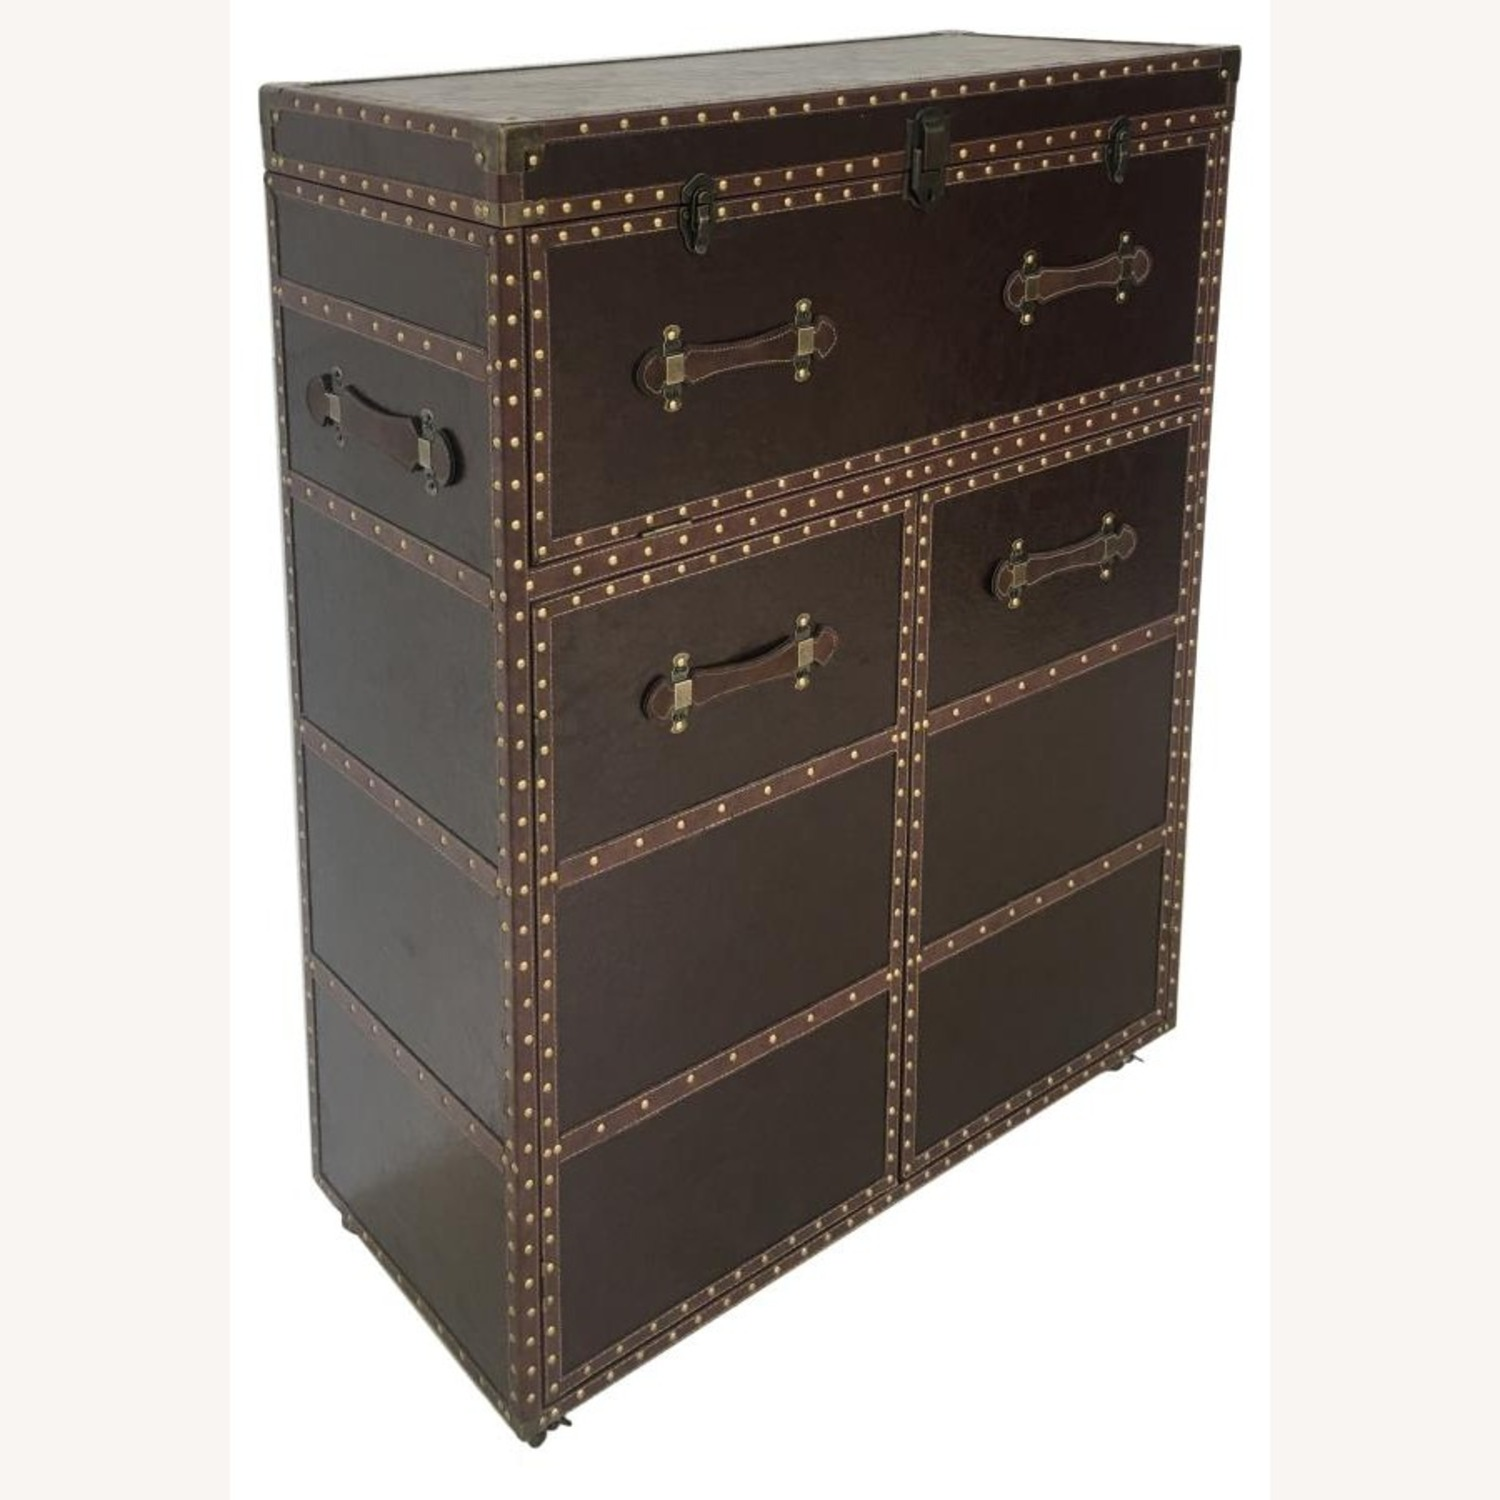 Bar Cabinet In Dark Brown Leatherette Finish - image-0